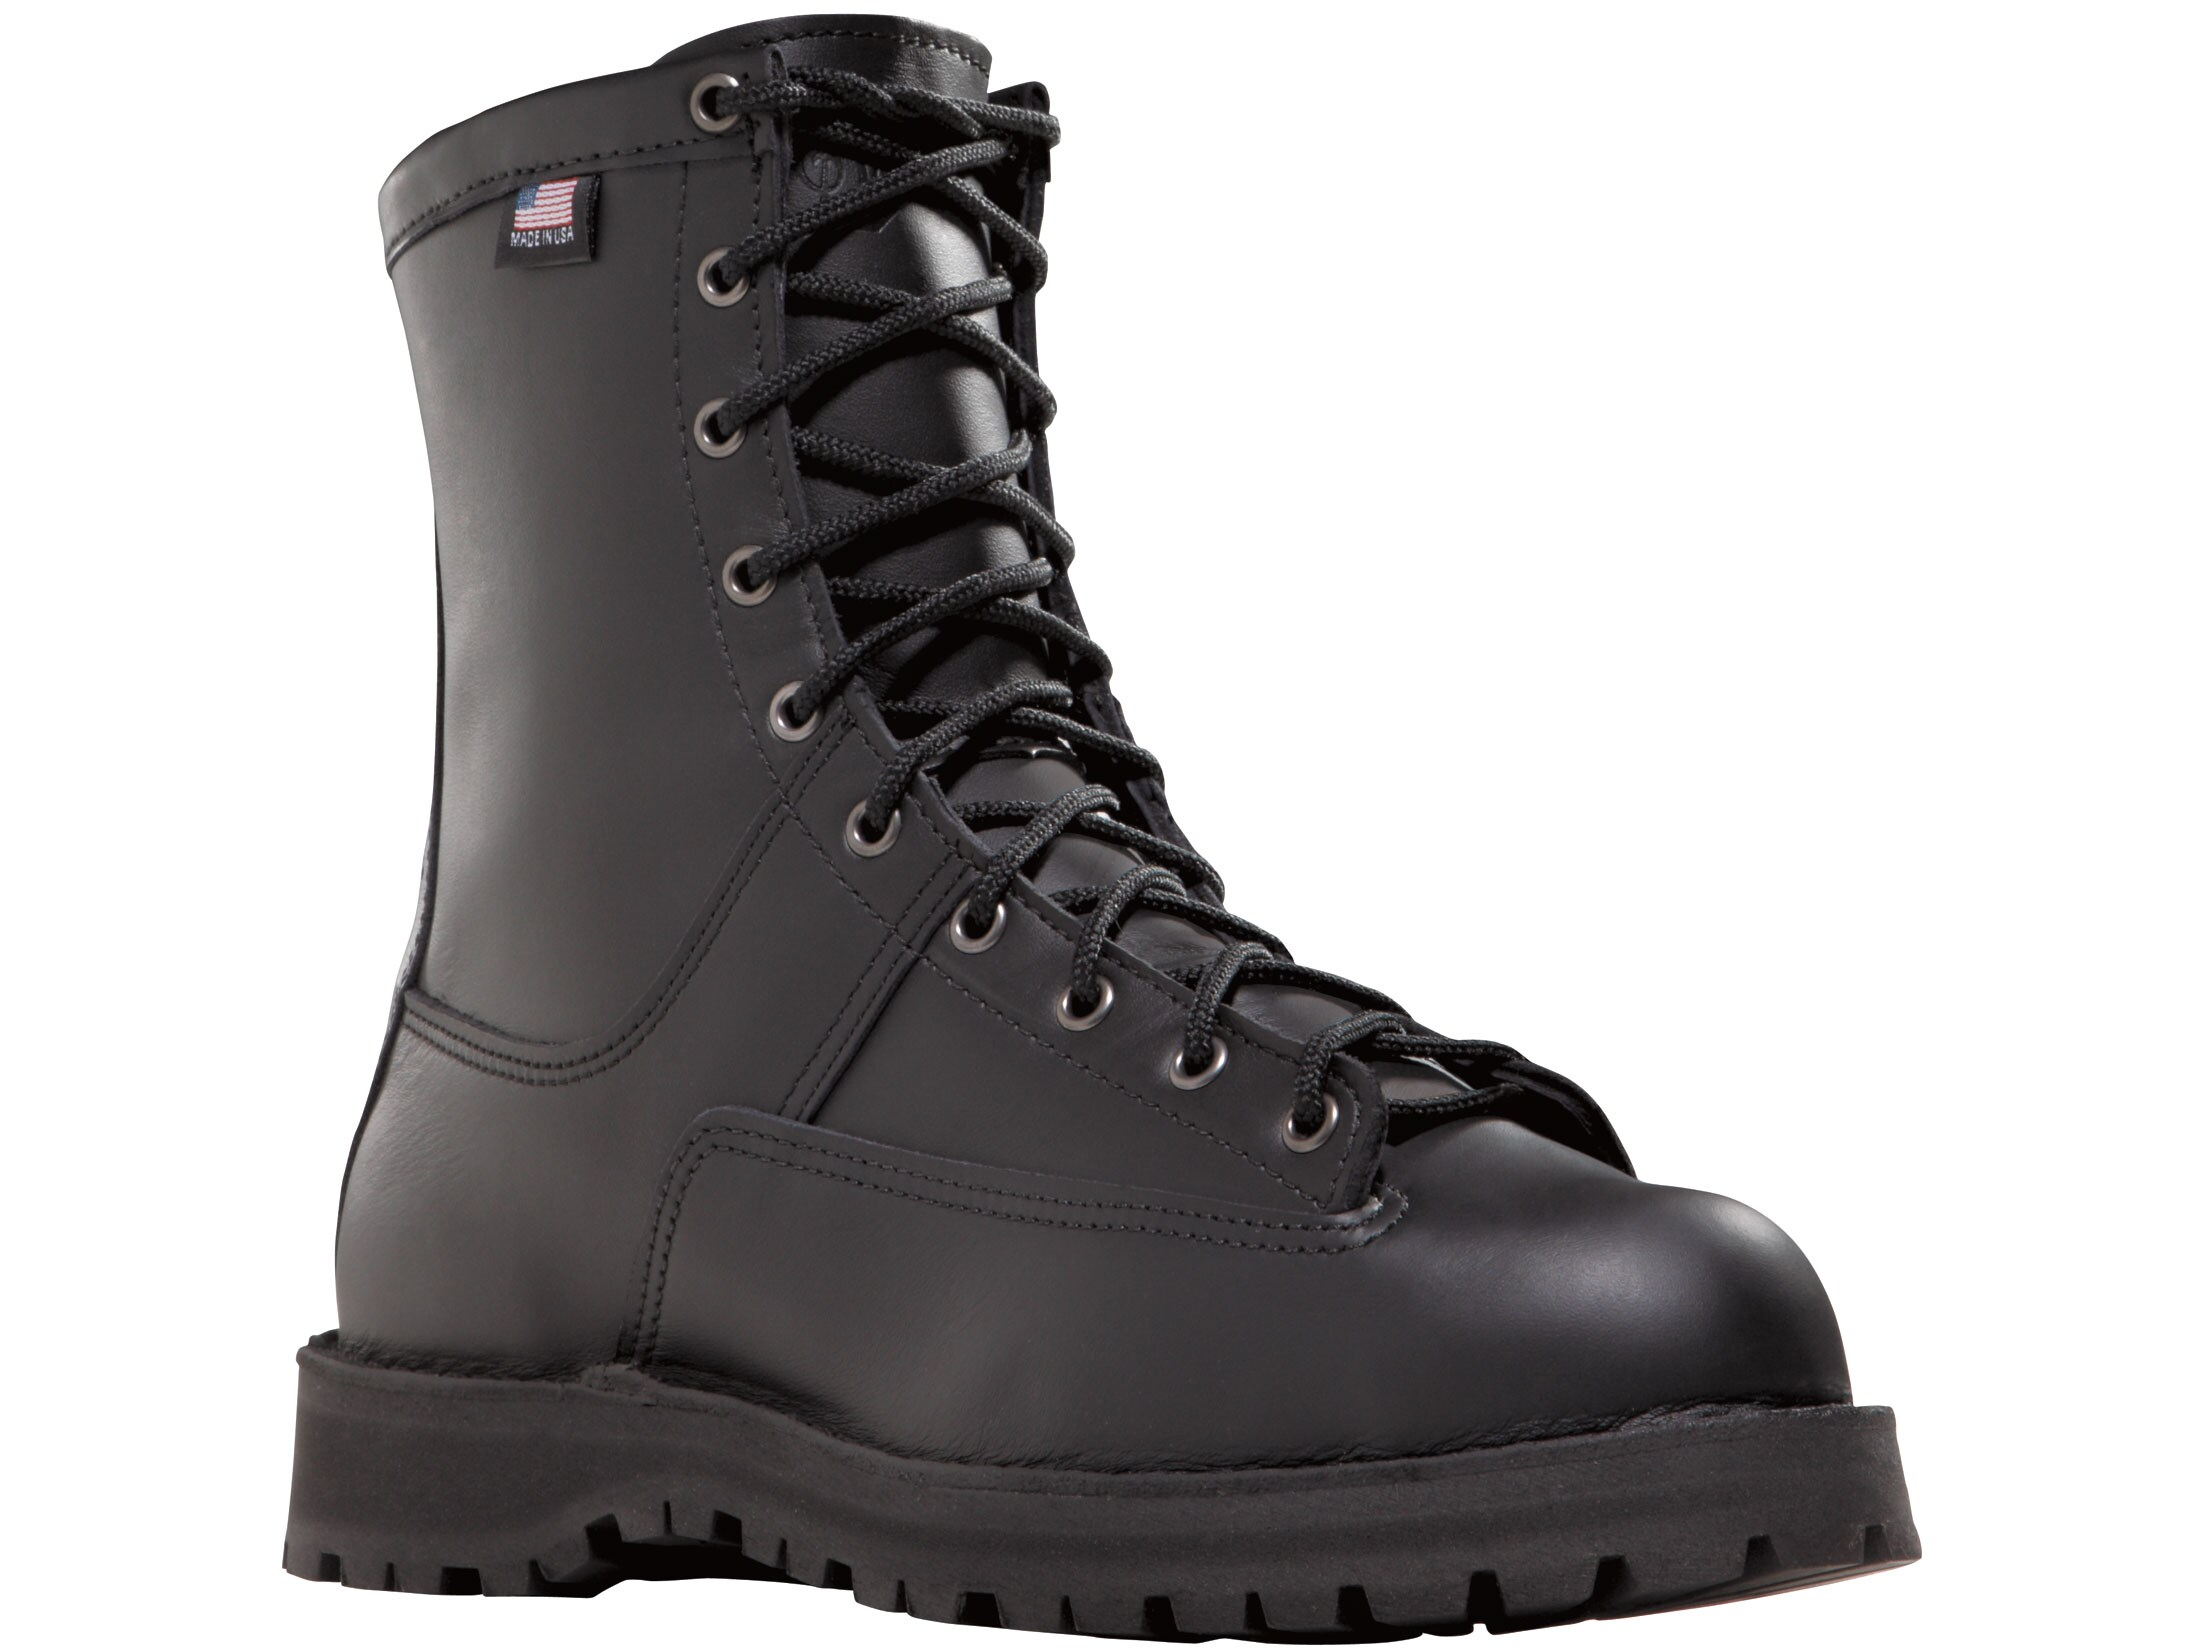 7dc667cba77 Danner Recon 8 GORE-TEX 200 Gram Insulated Tactical Boots Leather